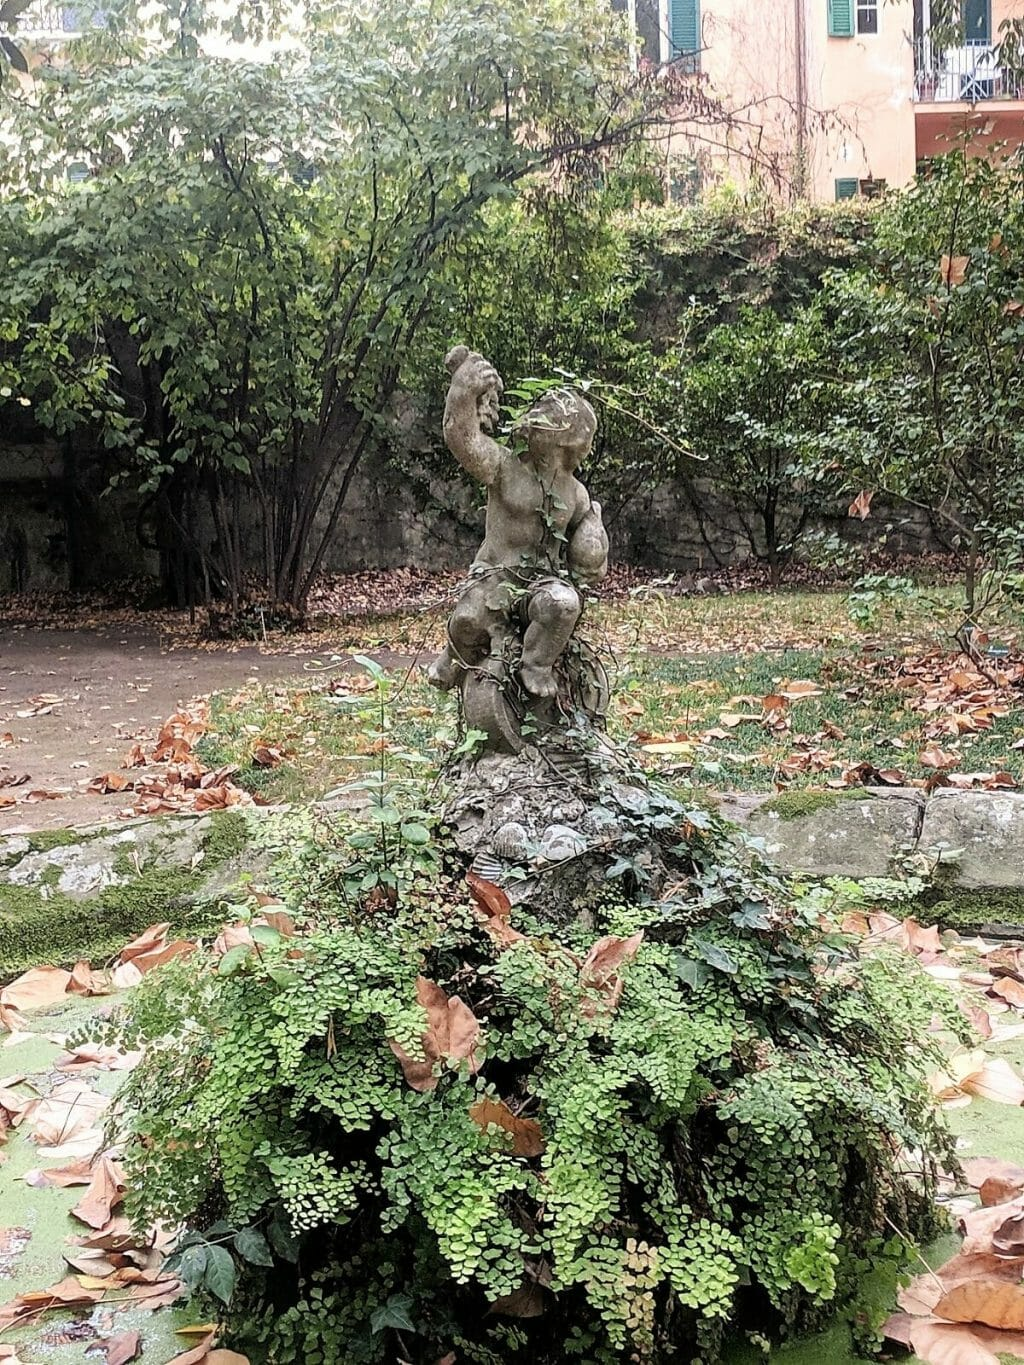 Old stone fountain covered with leaves in a picturesque Pisa garden